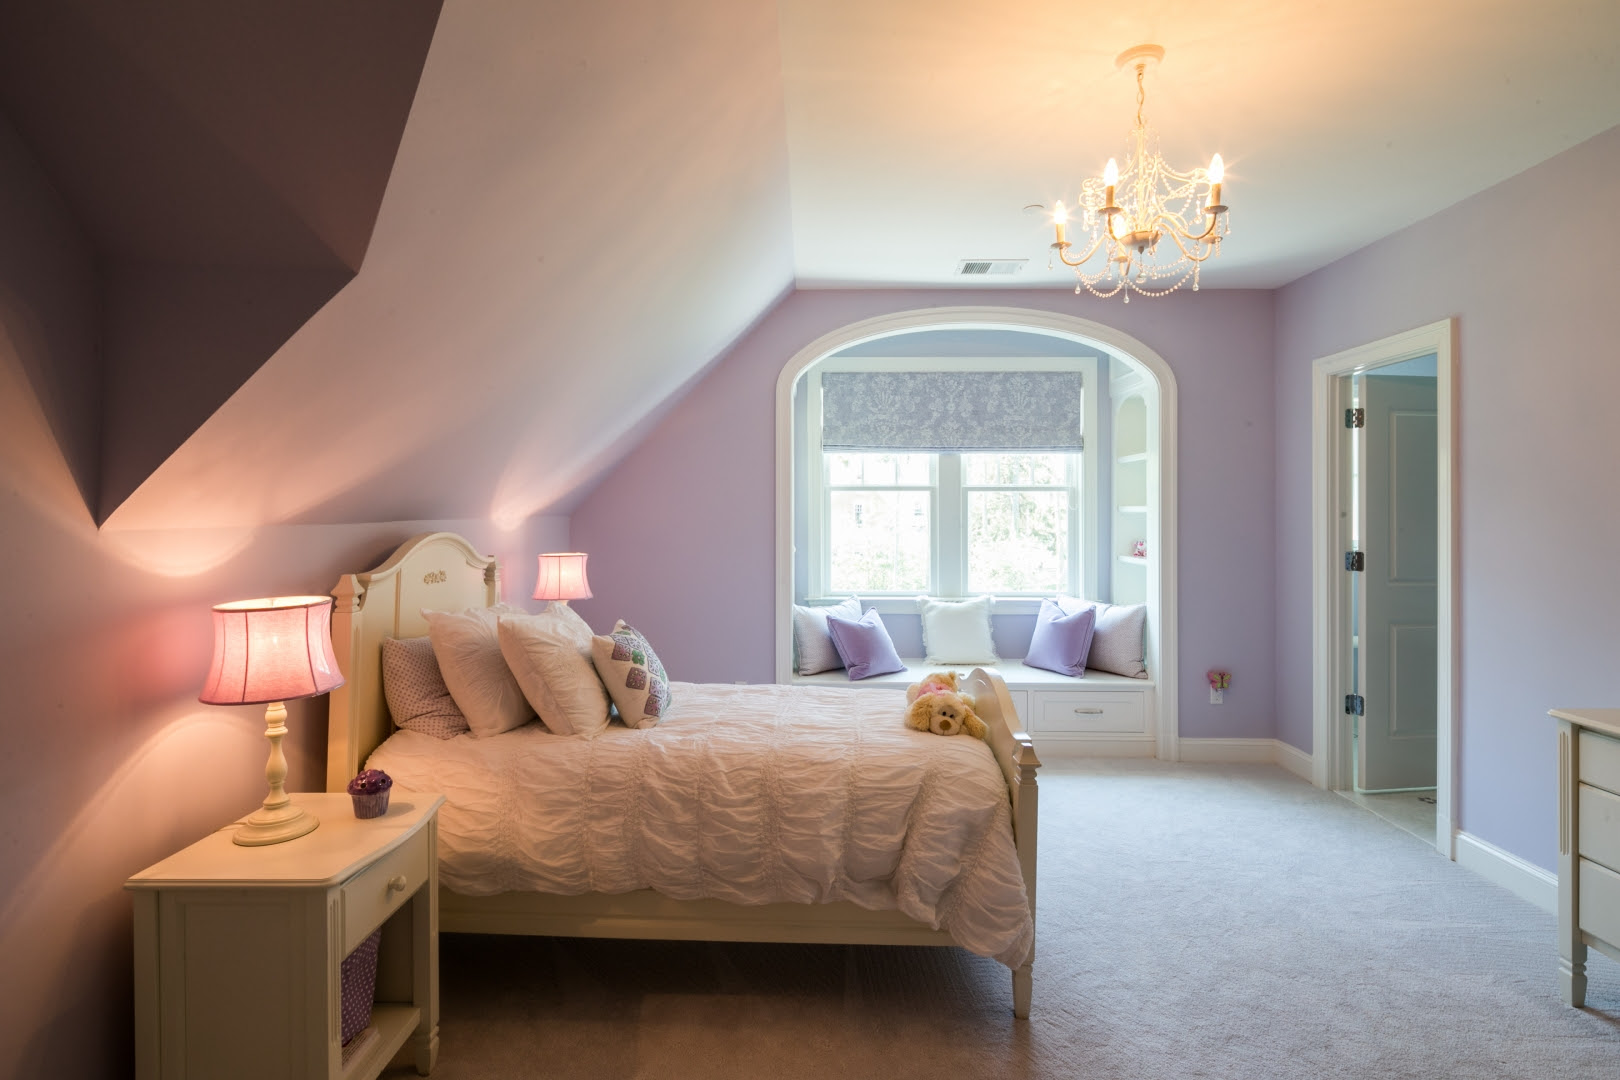 Top 5 Colors For A Seriously Soothing Bedroom Sandy Spring Builders